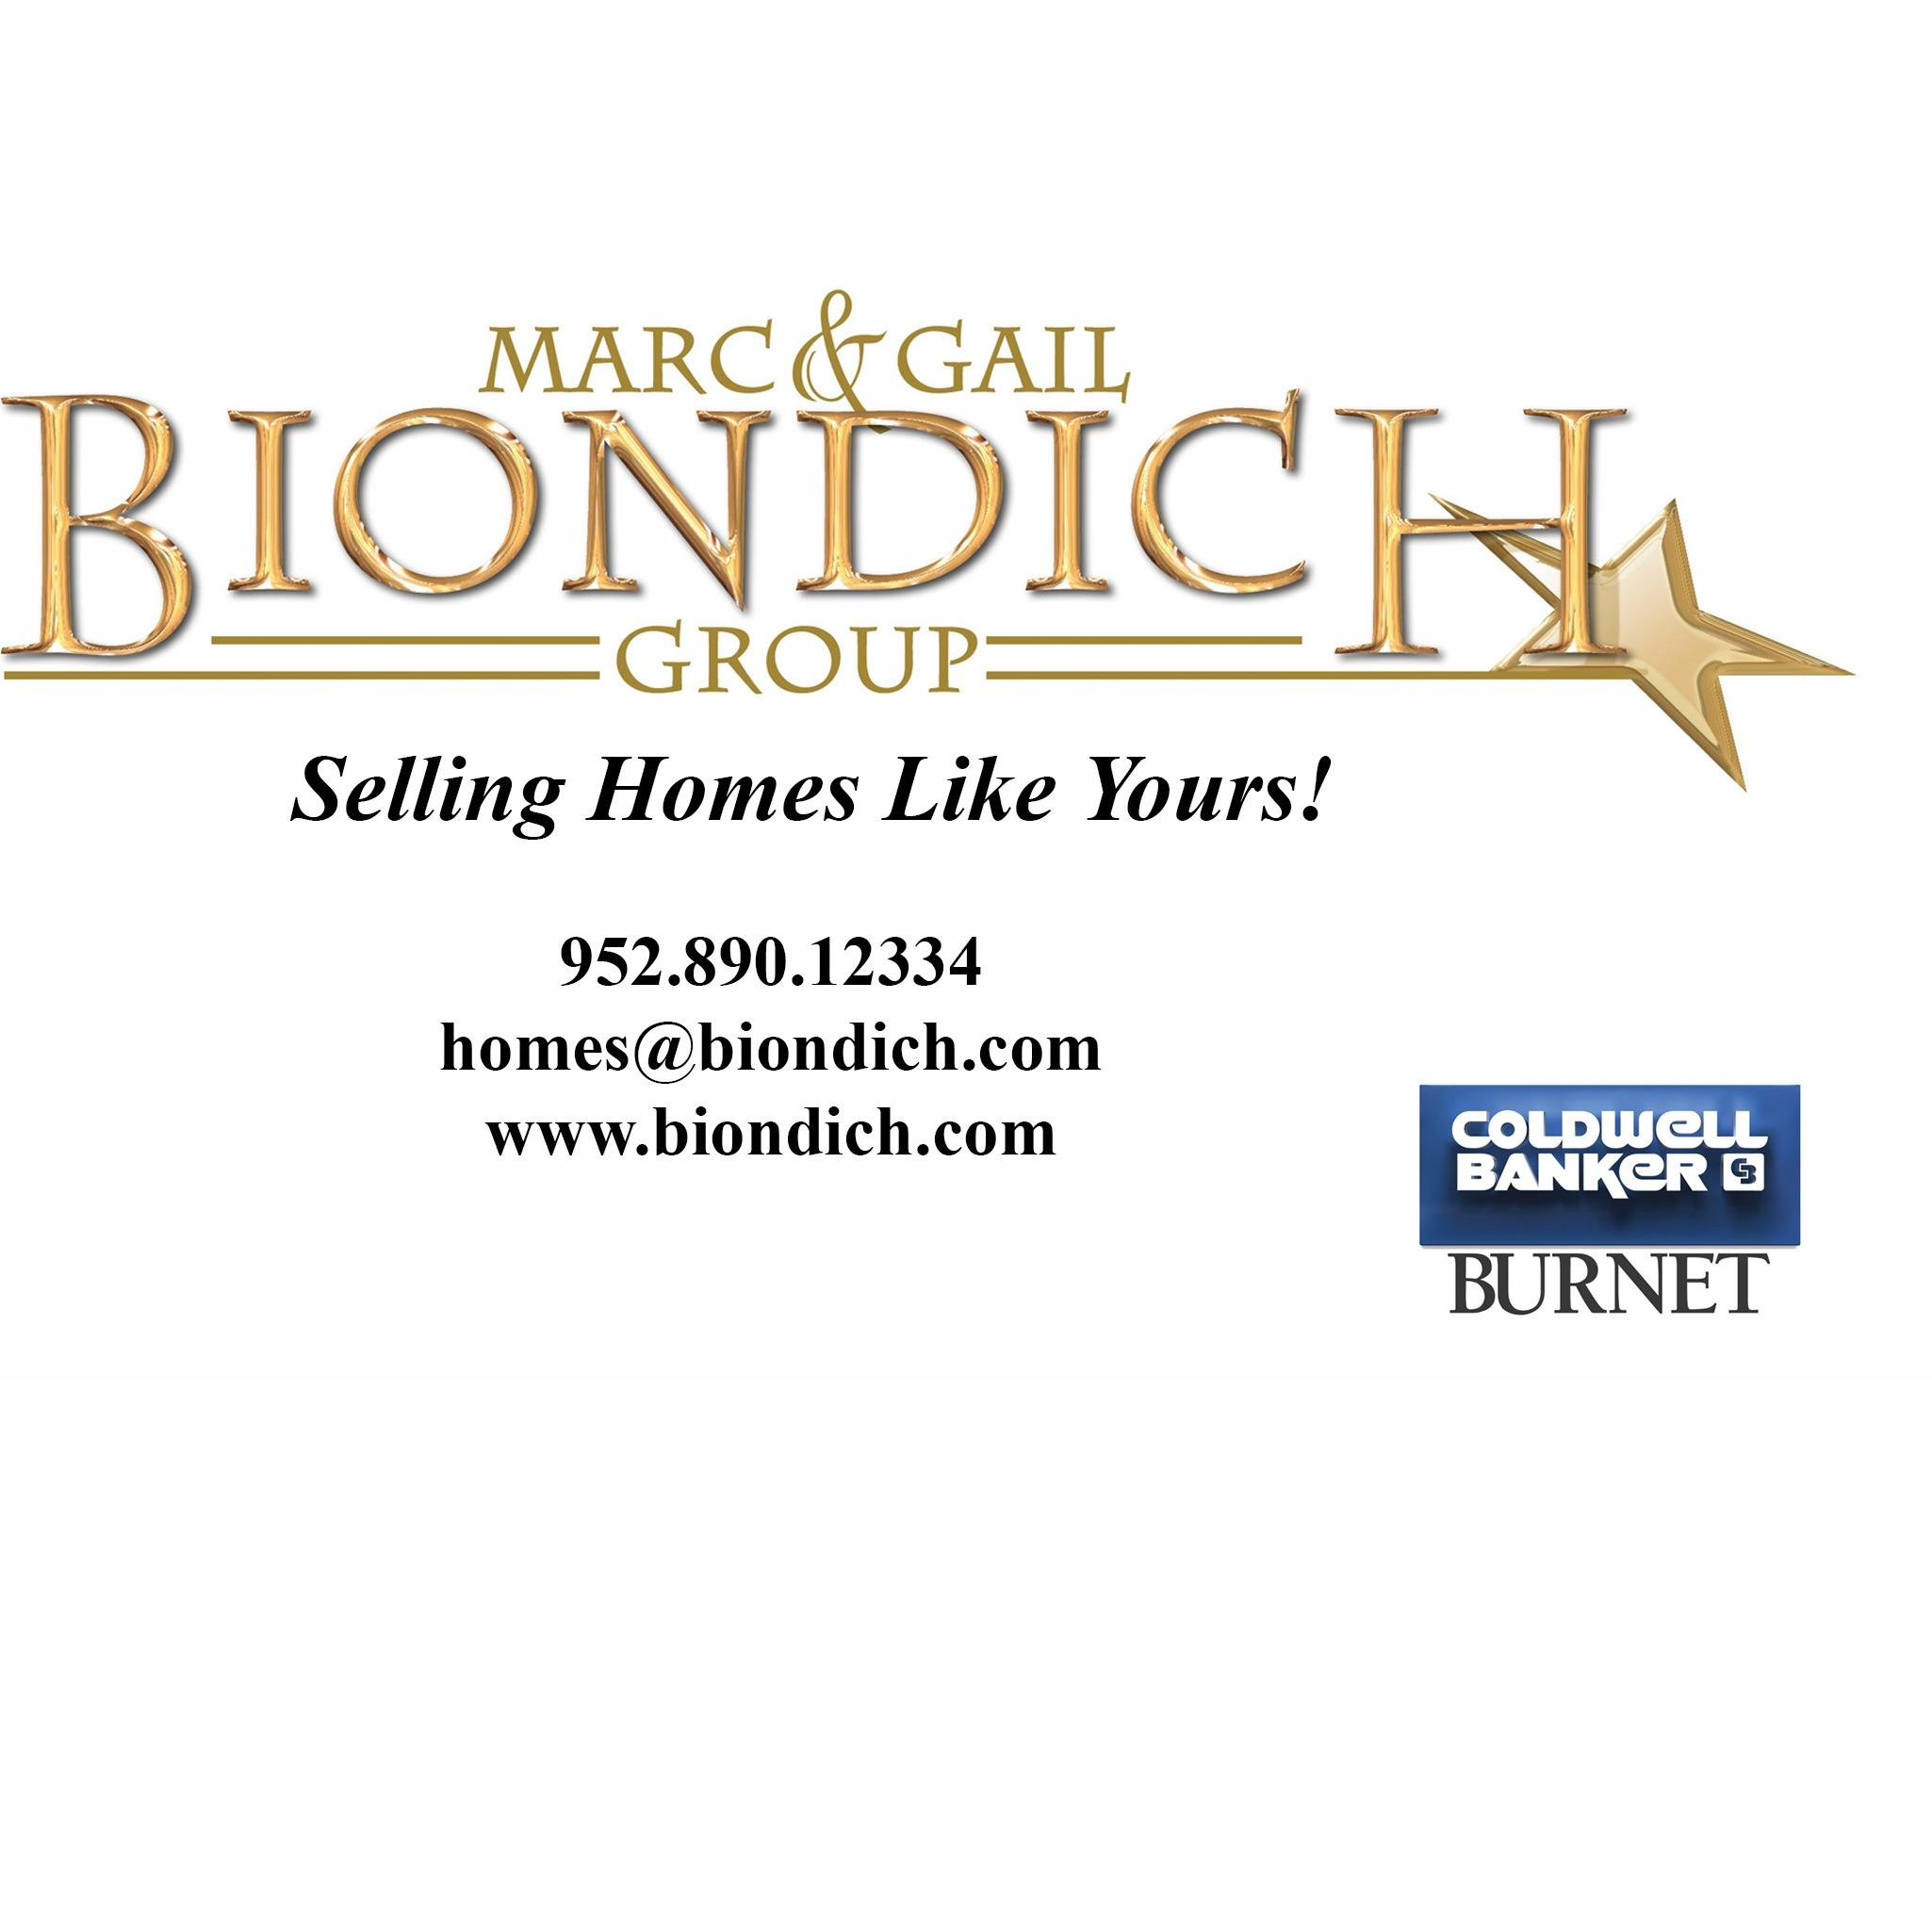 Biondich Group